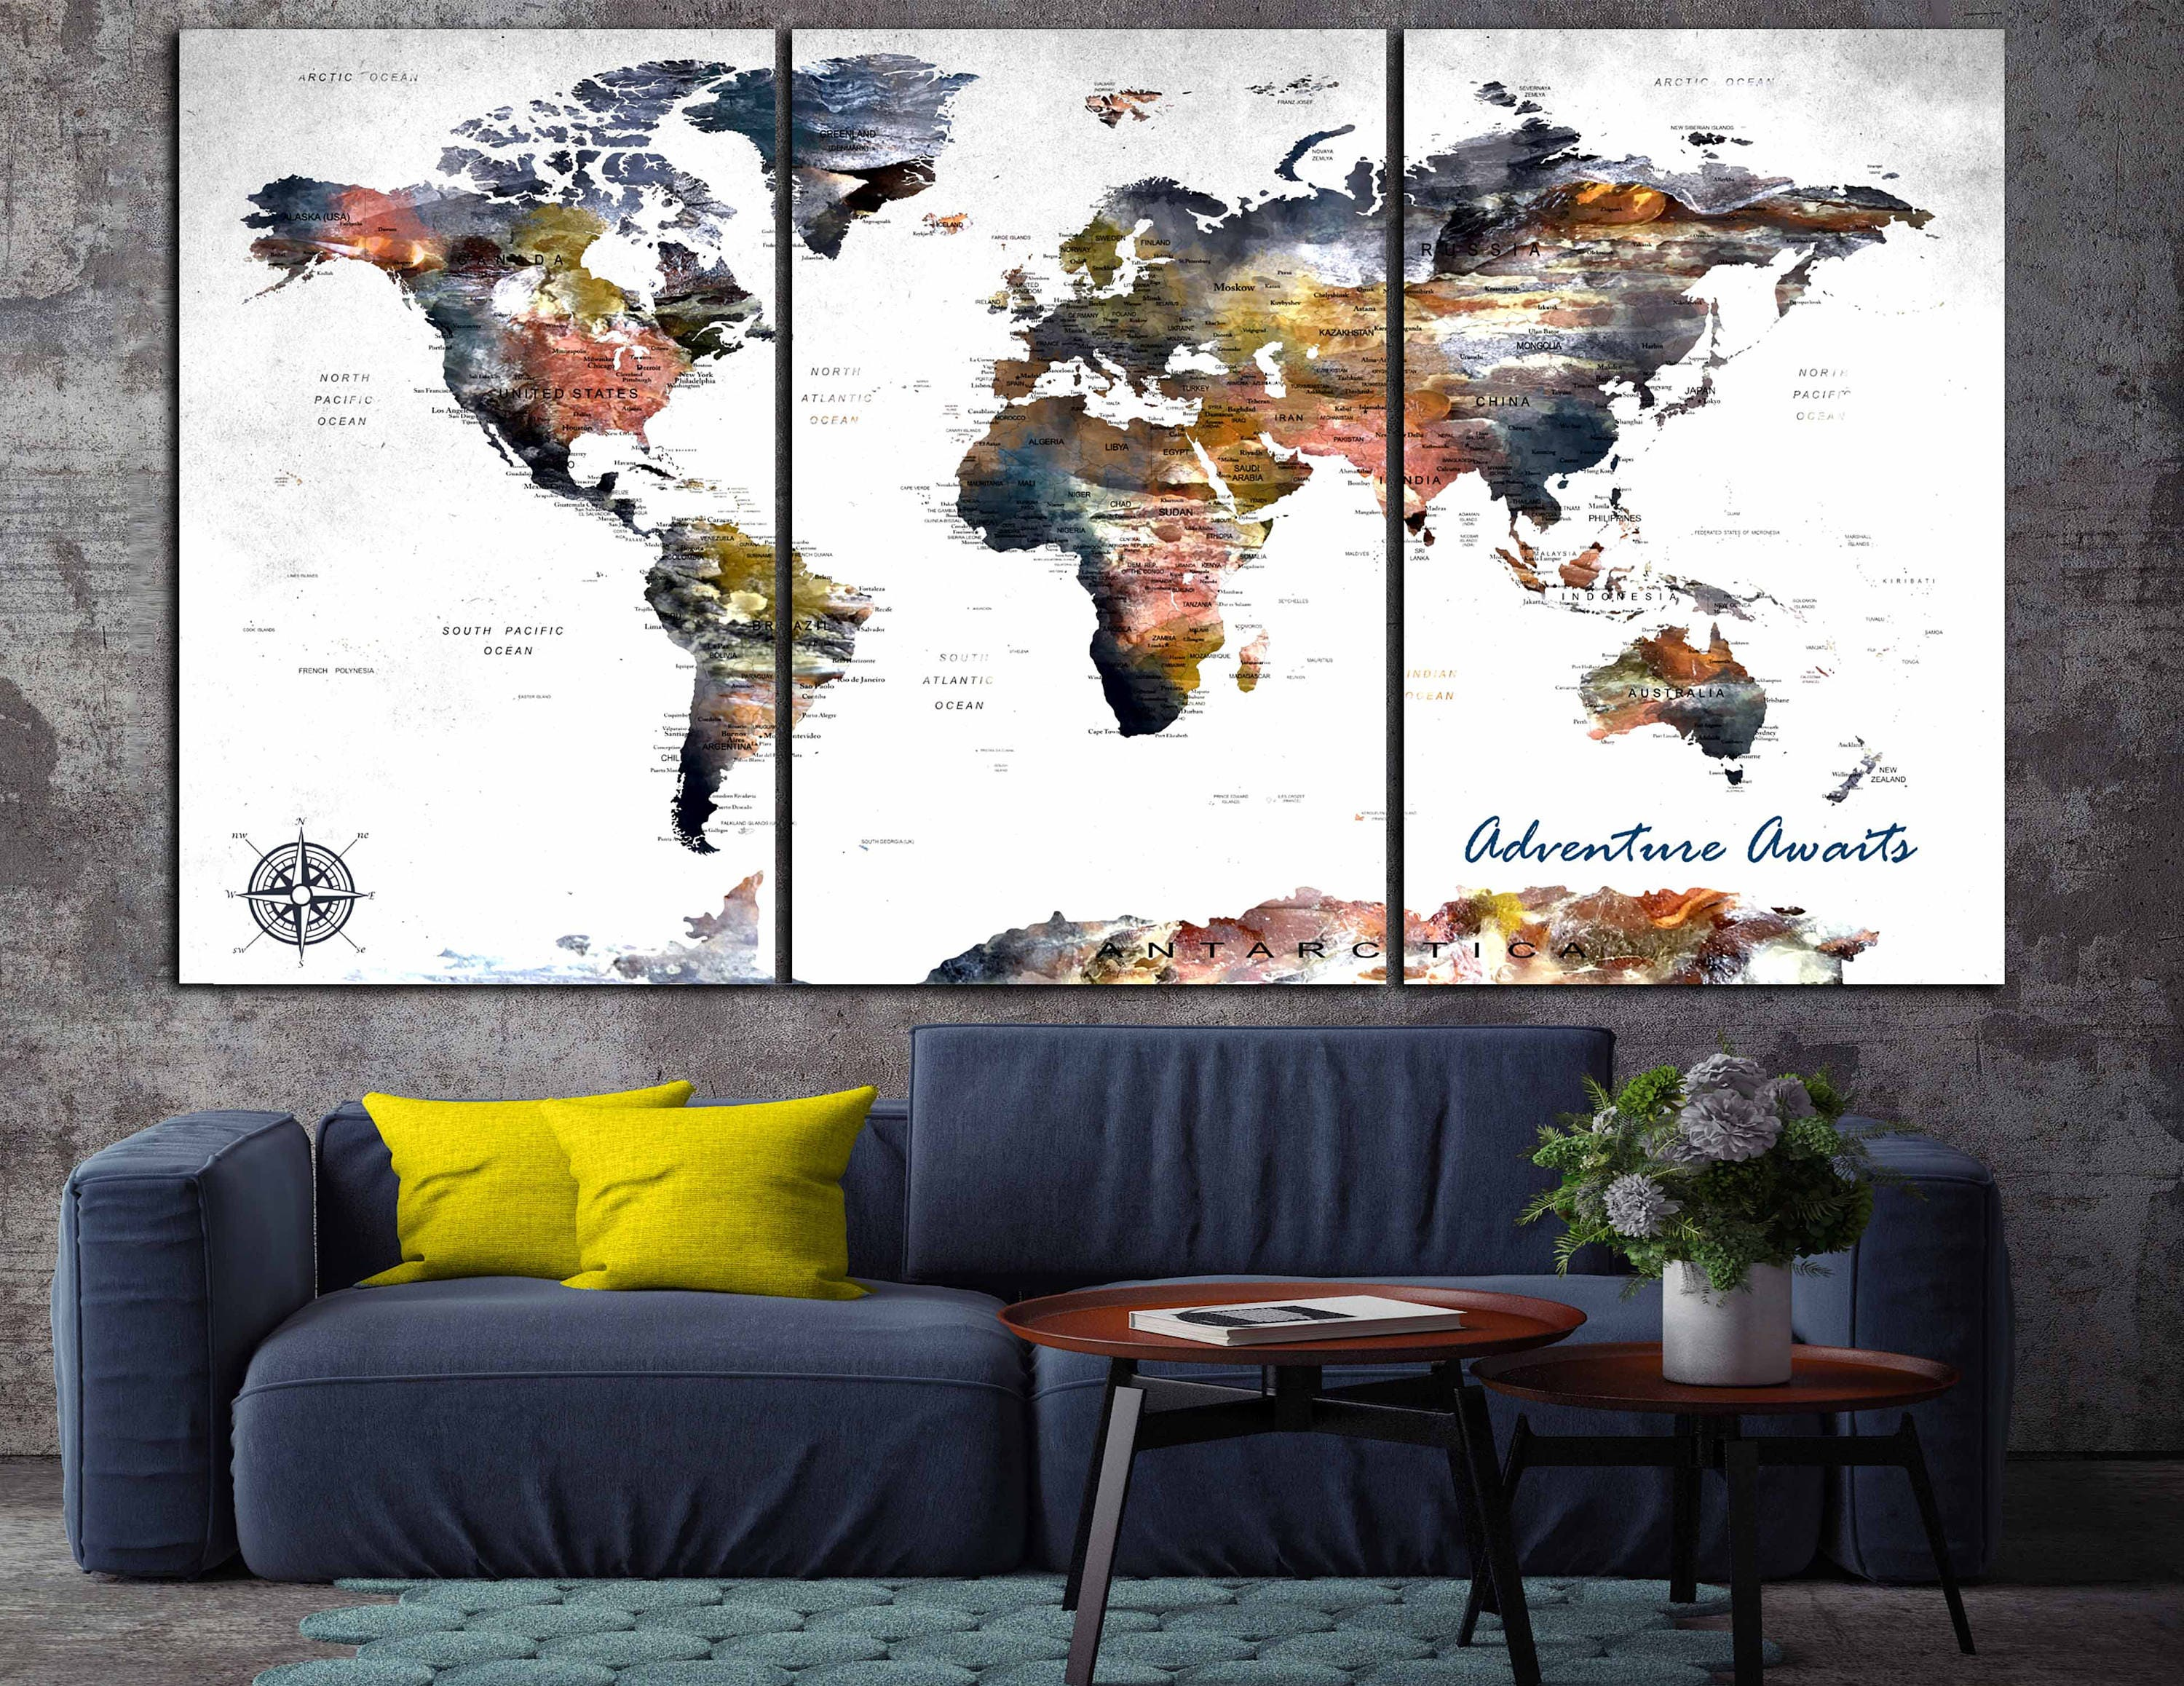 World map canvaslarge world mapworld map wall artlarge map panels world map canvaslarge world mapworld map wall artlarge map panelstravel mappush pin mapworld map artabstract world map artcustom map gumiabroncs Images